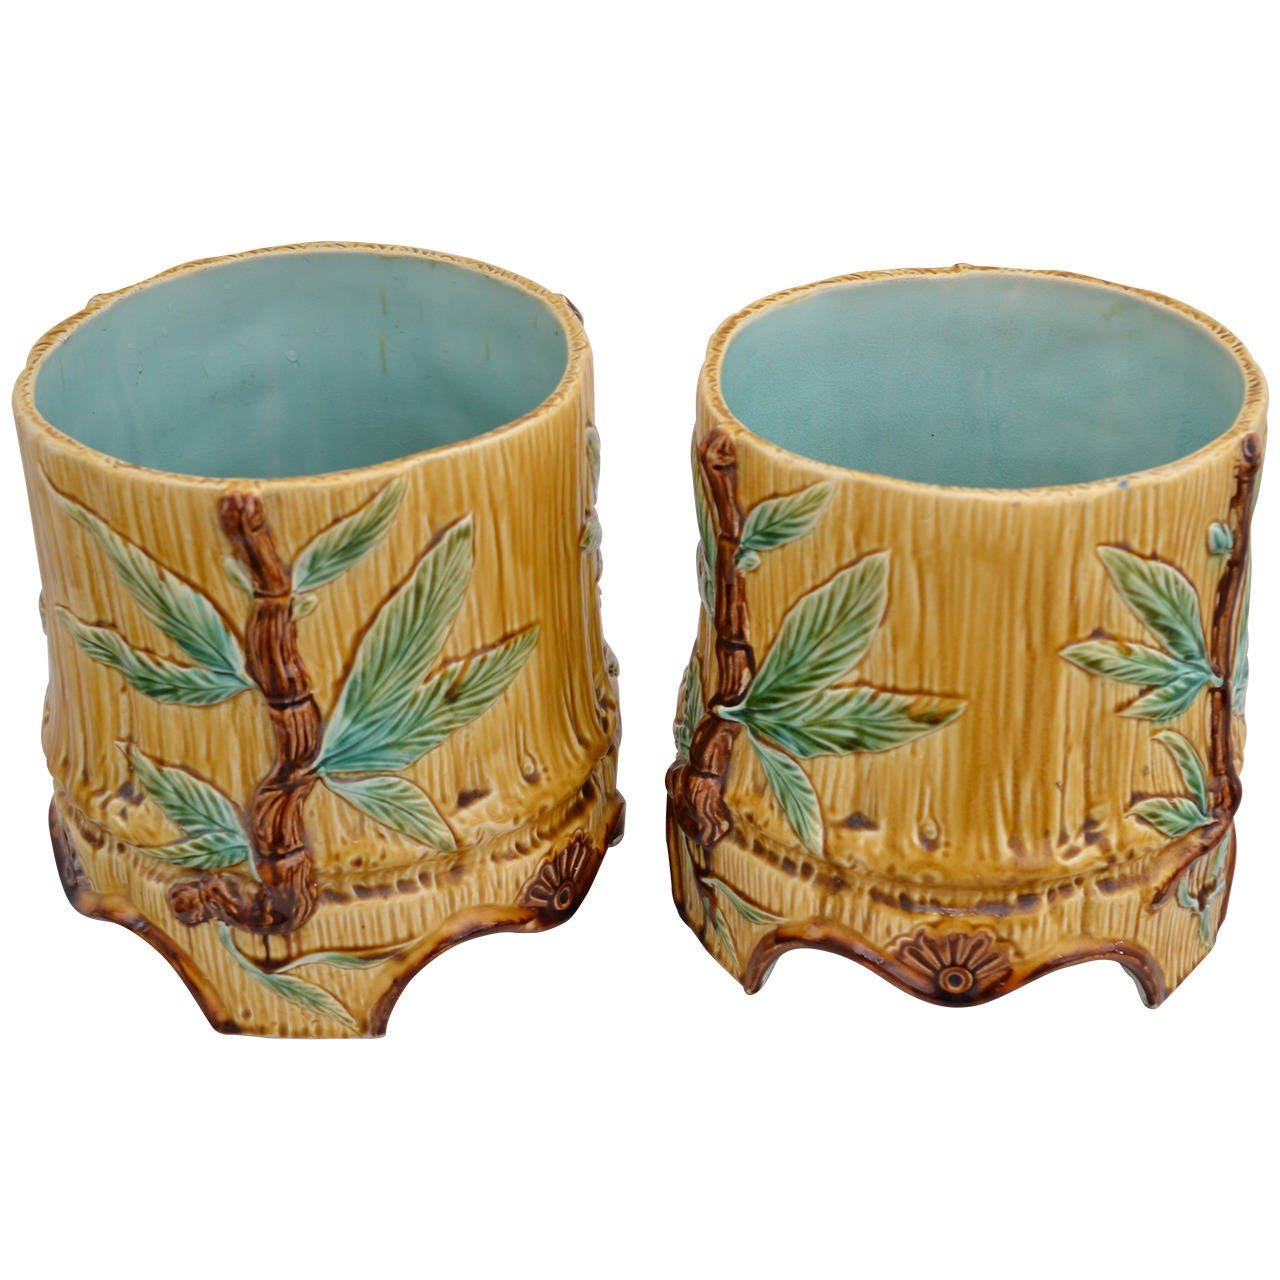 Flower Pots For Sale Two Nice Ceramic Flower Pots For Sale At 1stdibs